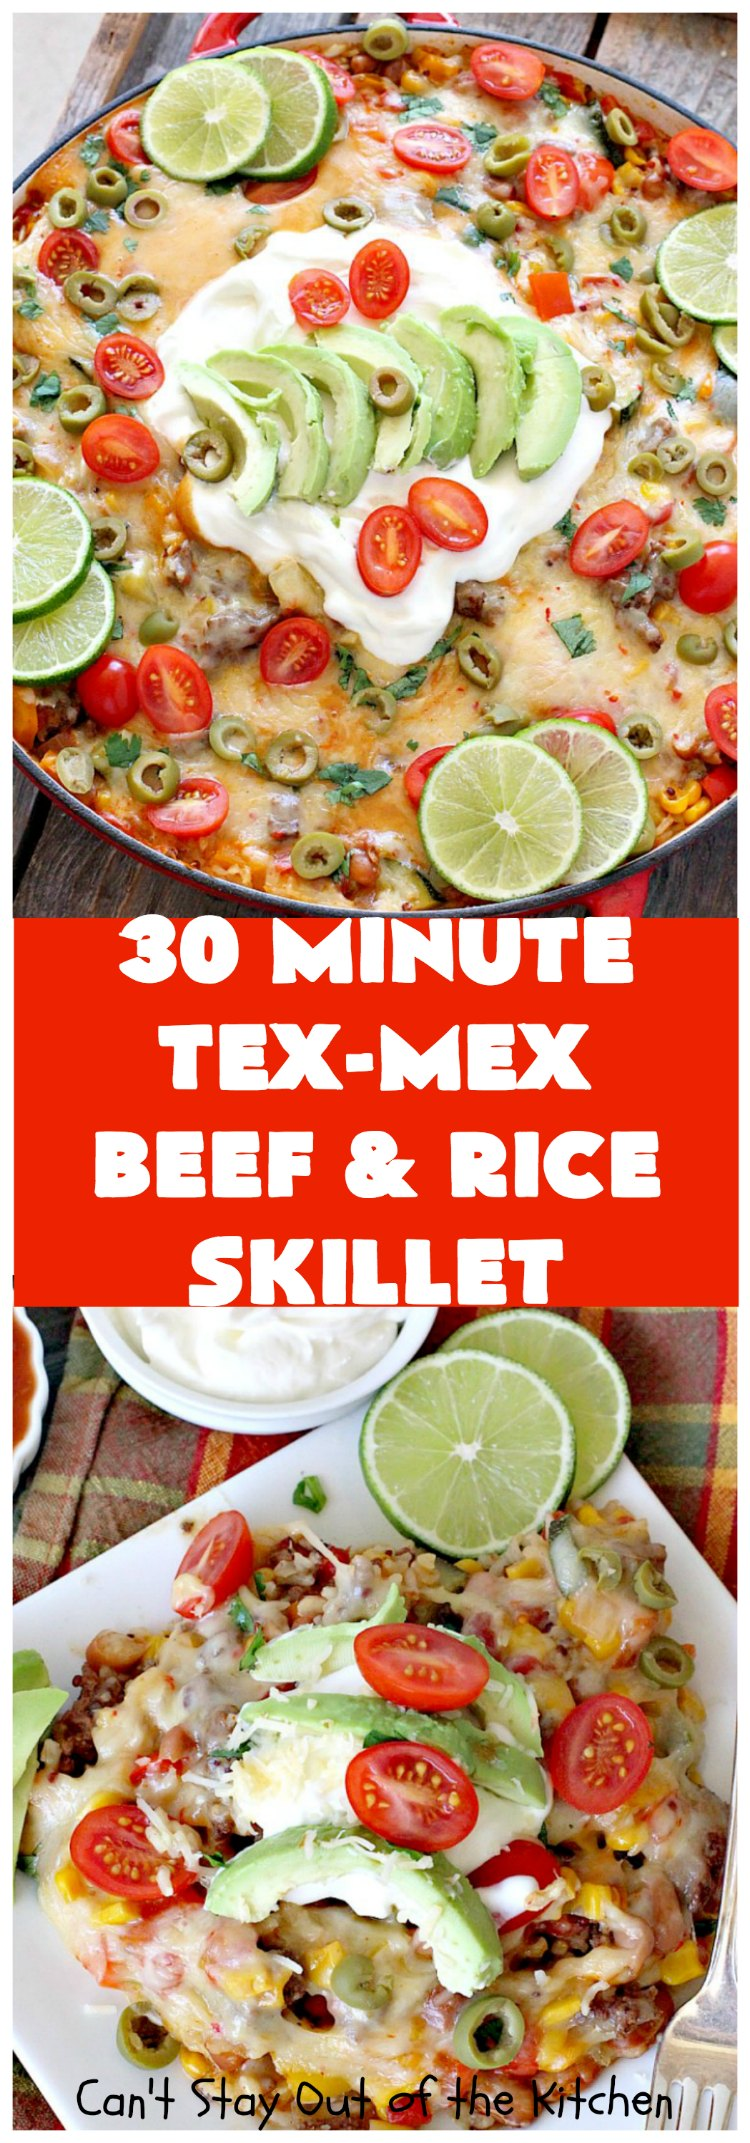 Tex-Mex Beef and Rice Skillet | Can't Stay Out of the Kitchen | this fantastic #TexMex meal takes only 30 minutes to prepare! It's loaded with toppings that add incredible flavor. Filled with healthy veggies, #beans & #rice. #glutenfree